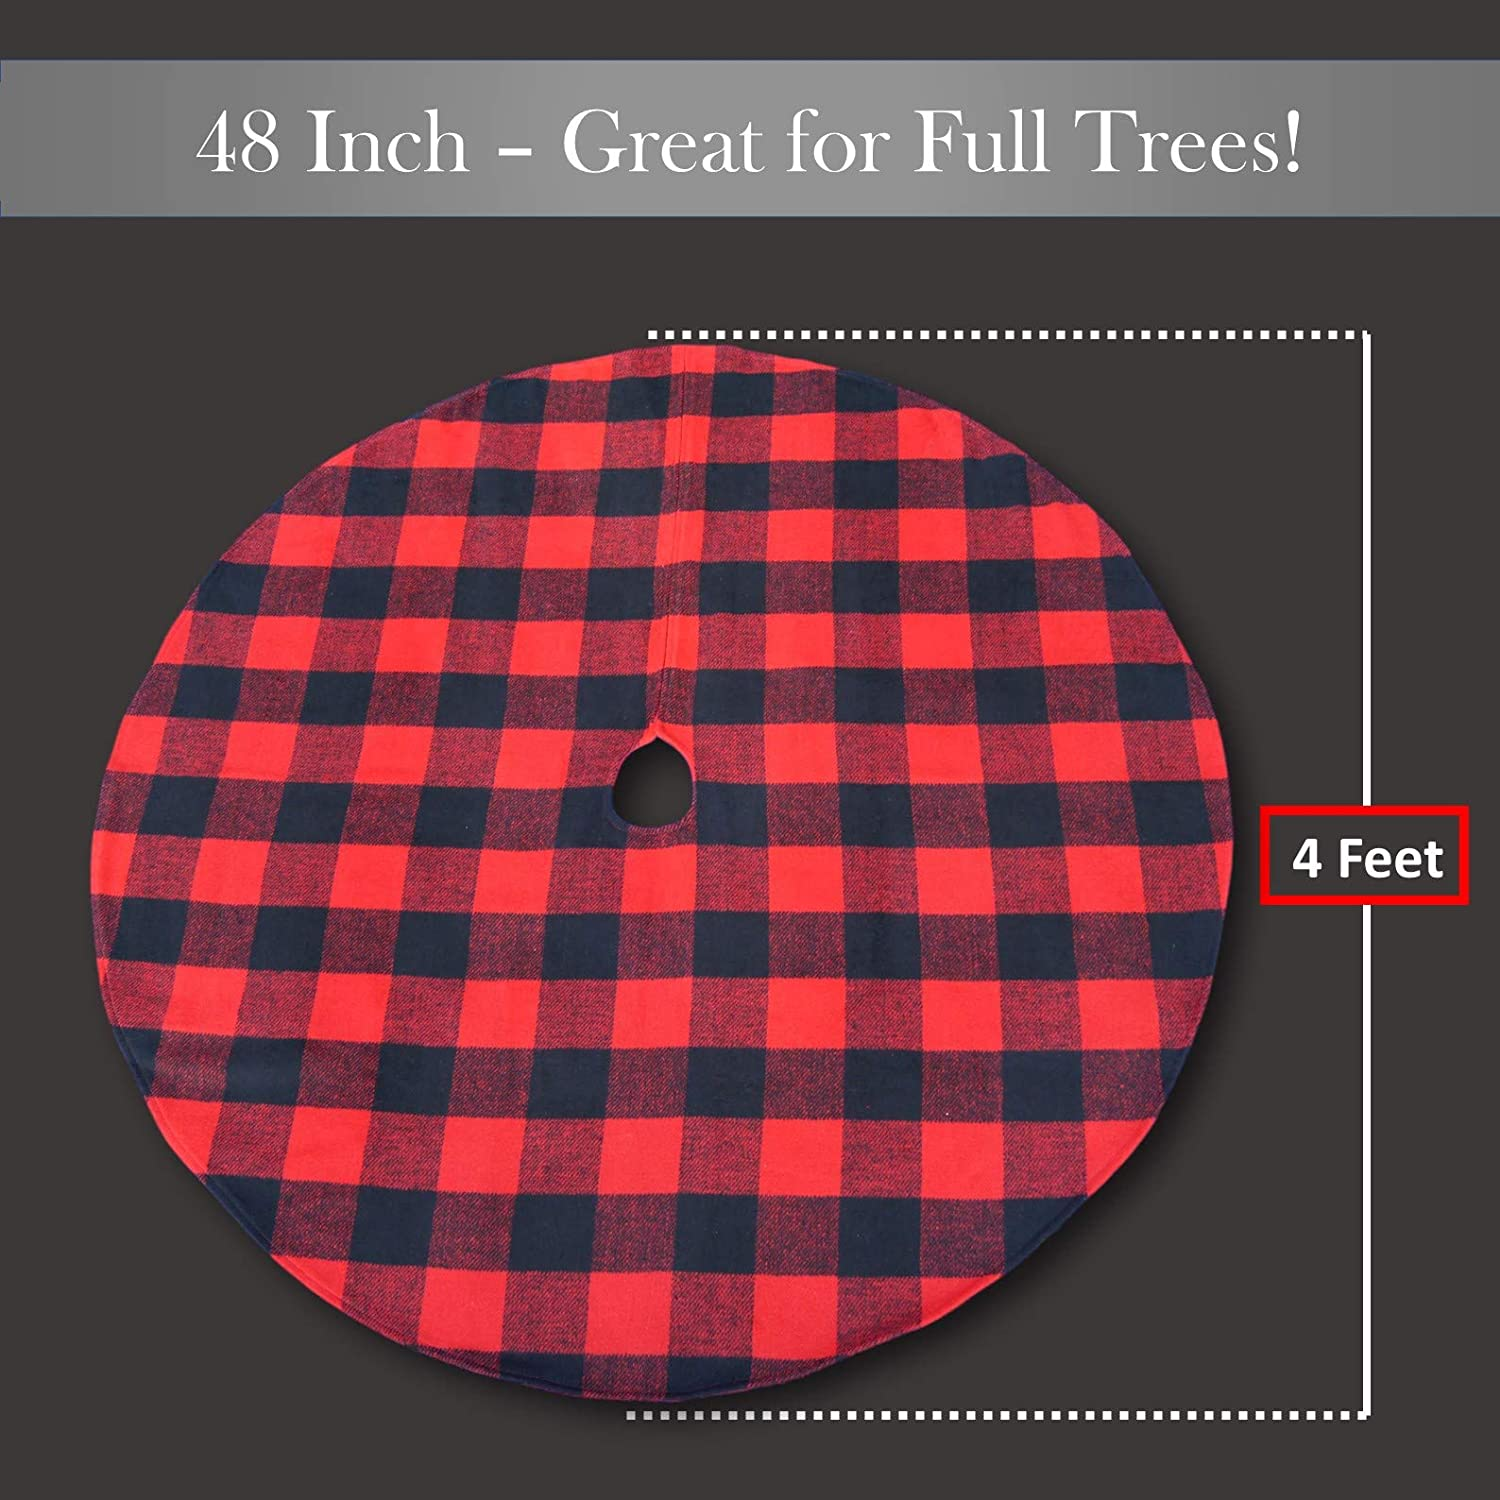 ATLIN Buffalo Plaid Christmas Tree Skirt Machine Wash and Dry Larger 3 Inch Red and Black Checks for a Traditional Look 3 ft and 4 ft Diameter Options